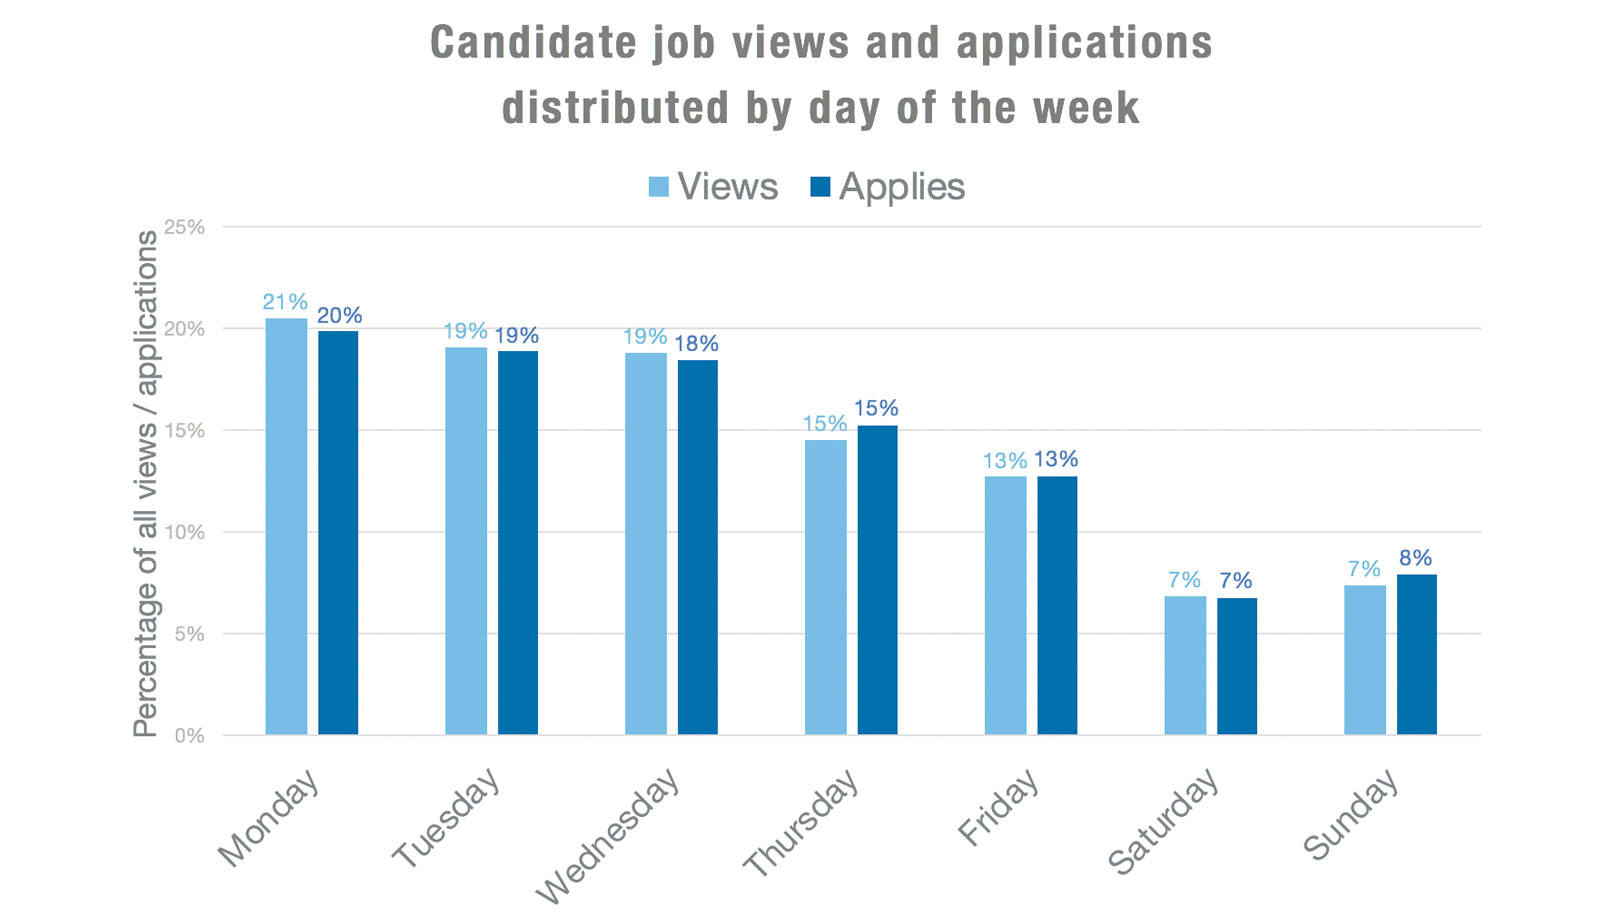 Jobs Работа 4 New Job Post Stats That Will Help You Attract Candidates